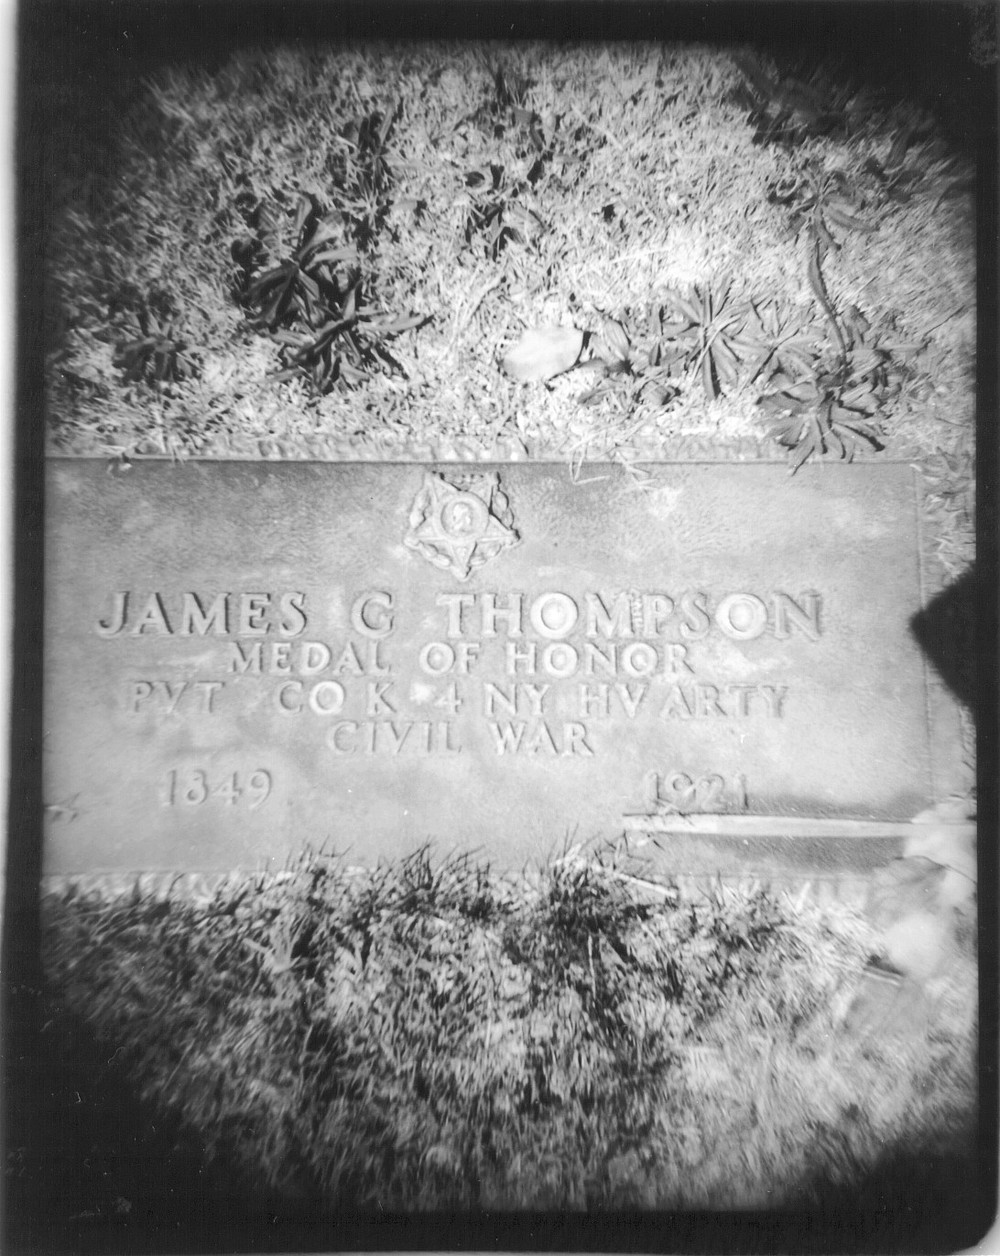 Thompson grave site (not mentioned in article)